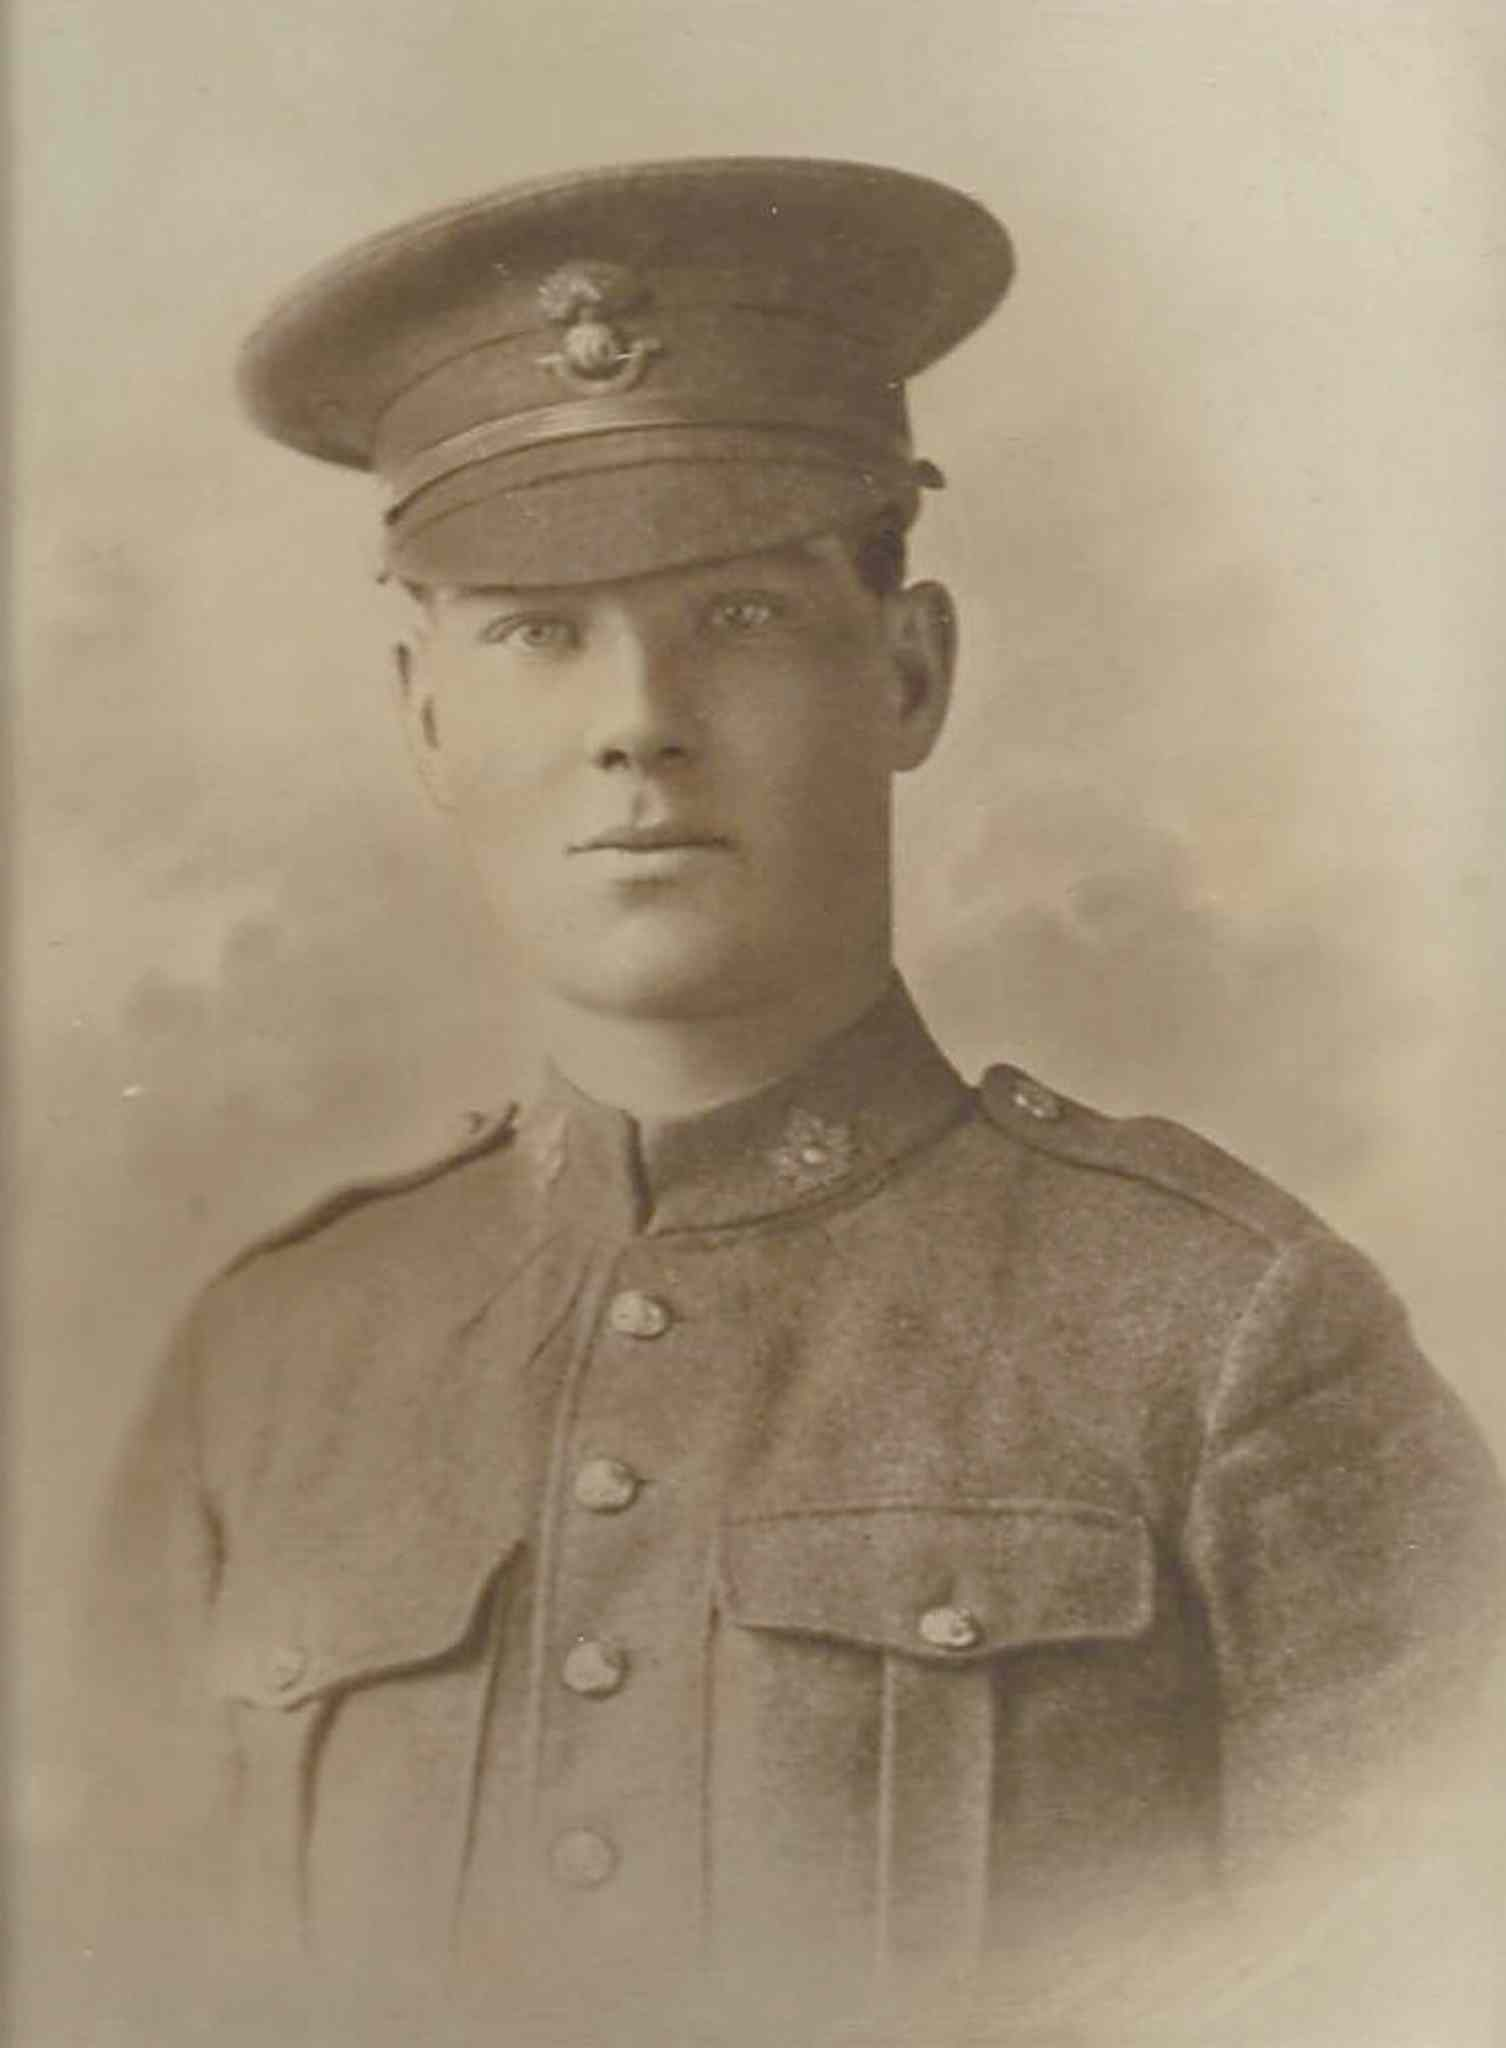 Pte. William Simms